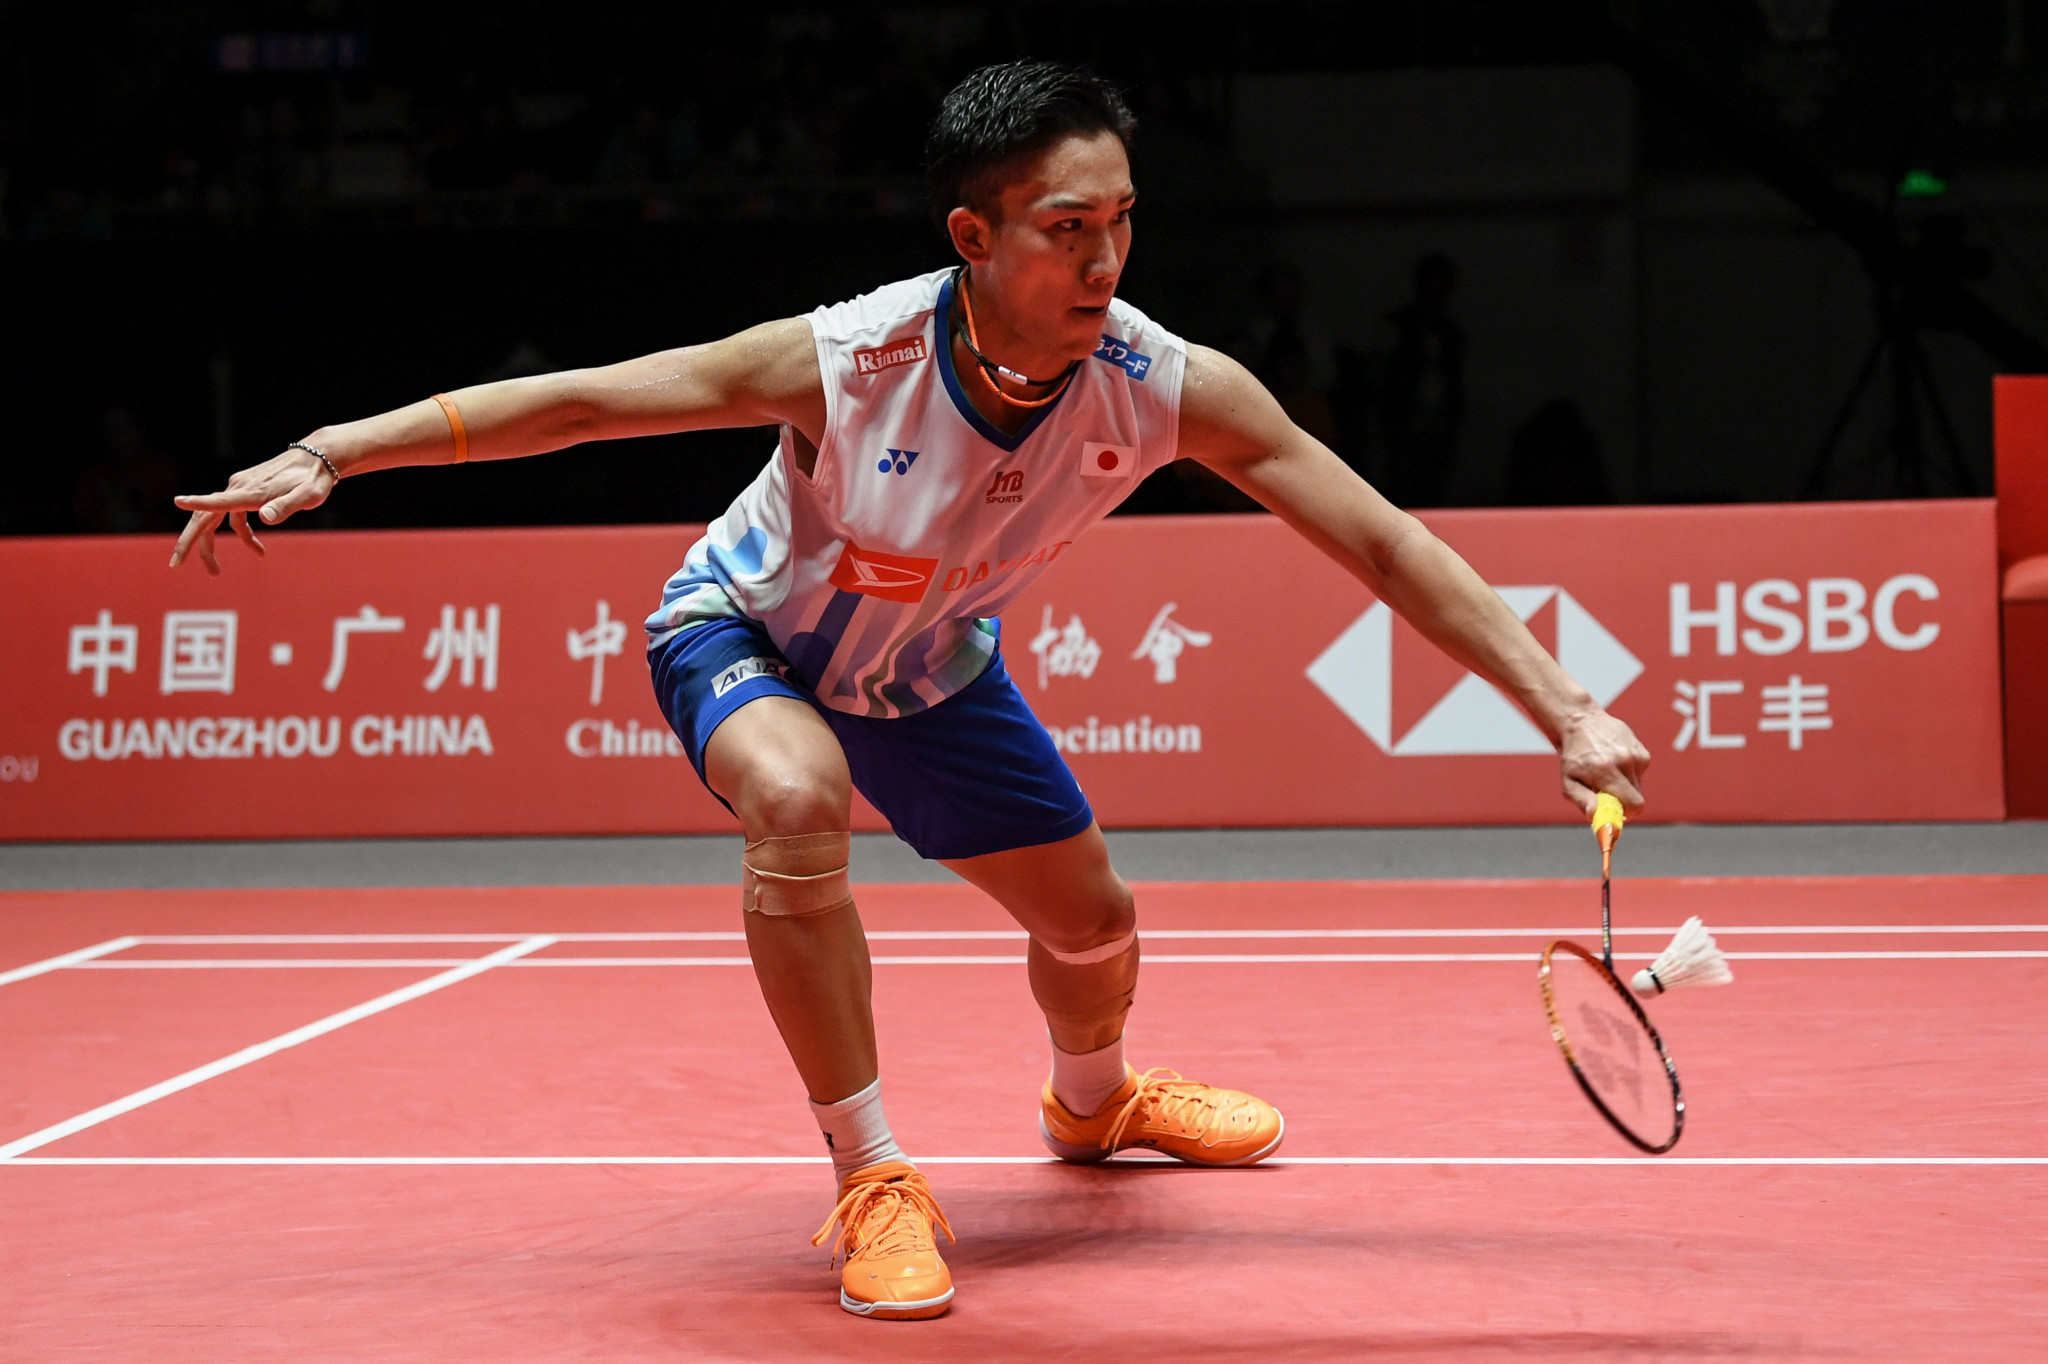 Japan's Kento Momota continued his outstanding record against Denmark's Viktor Axelsen by winning their men's singles semi-final at the Indonesia Masters in Jakarta ©Getty Images